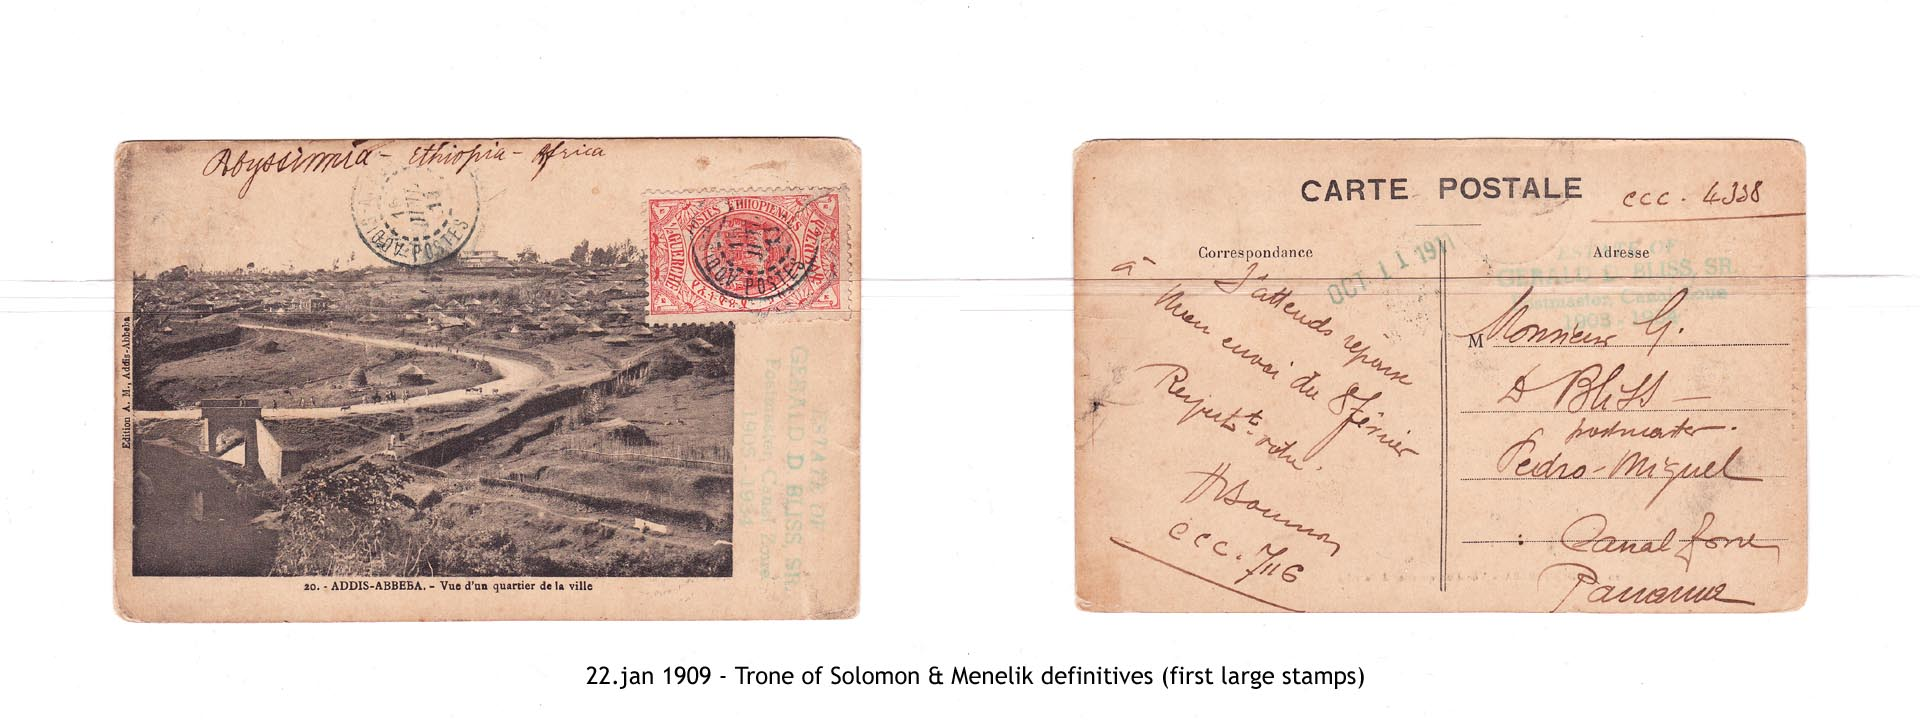 19090122 - Trone of Solomon & Menelik definitives (first large stamps)